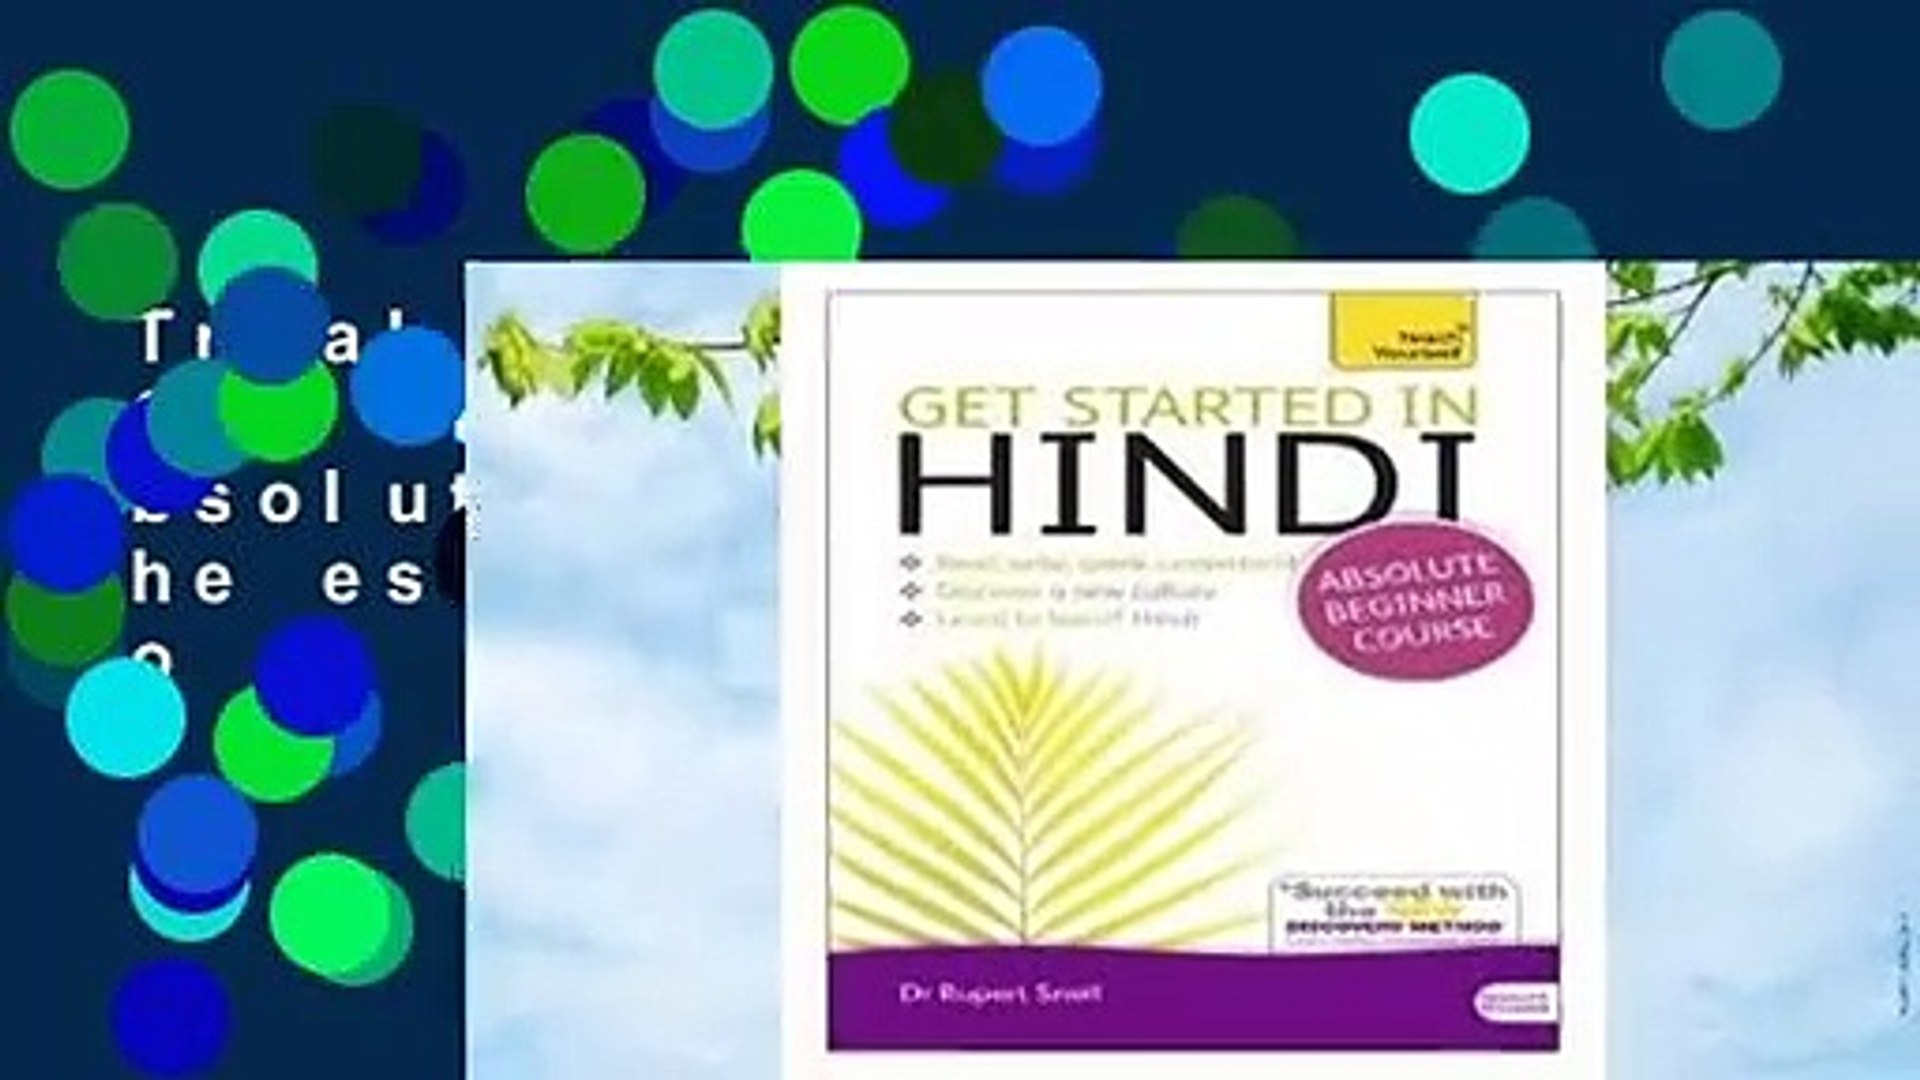 Trial New Releases  Get Started in Hindi Absolute Beginner Course: The essential introduction to